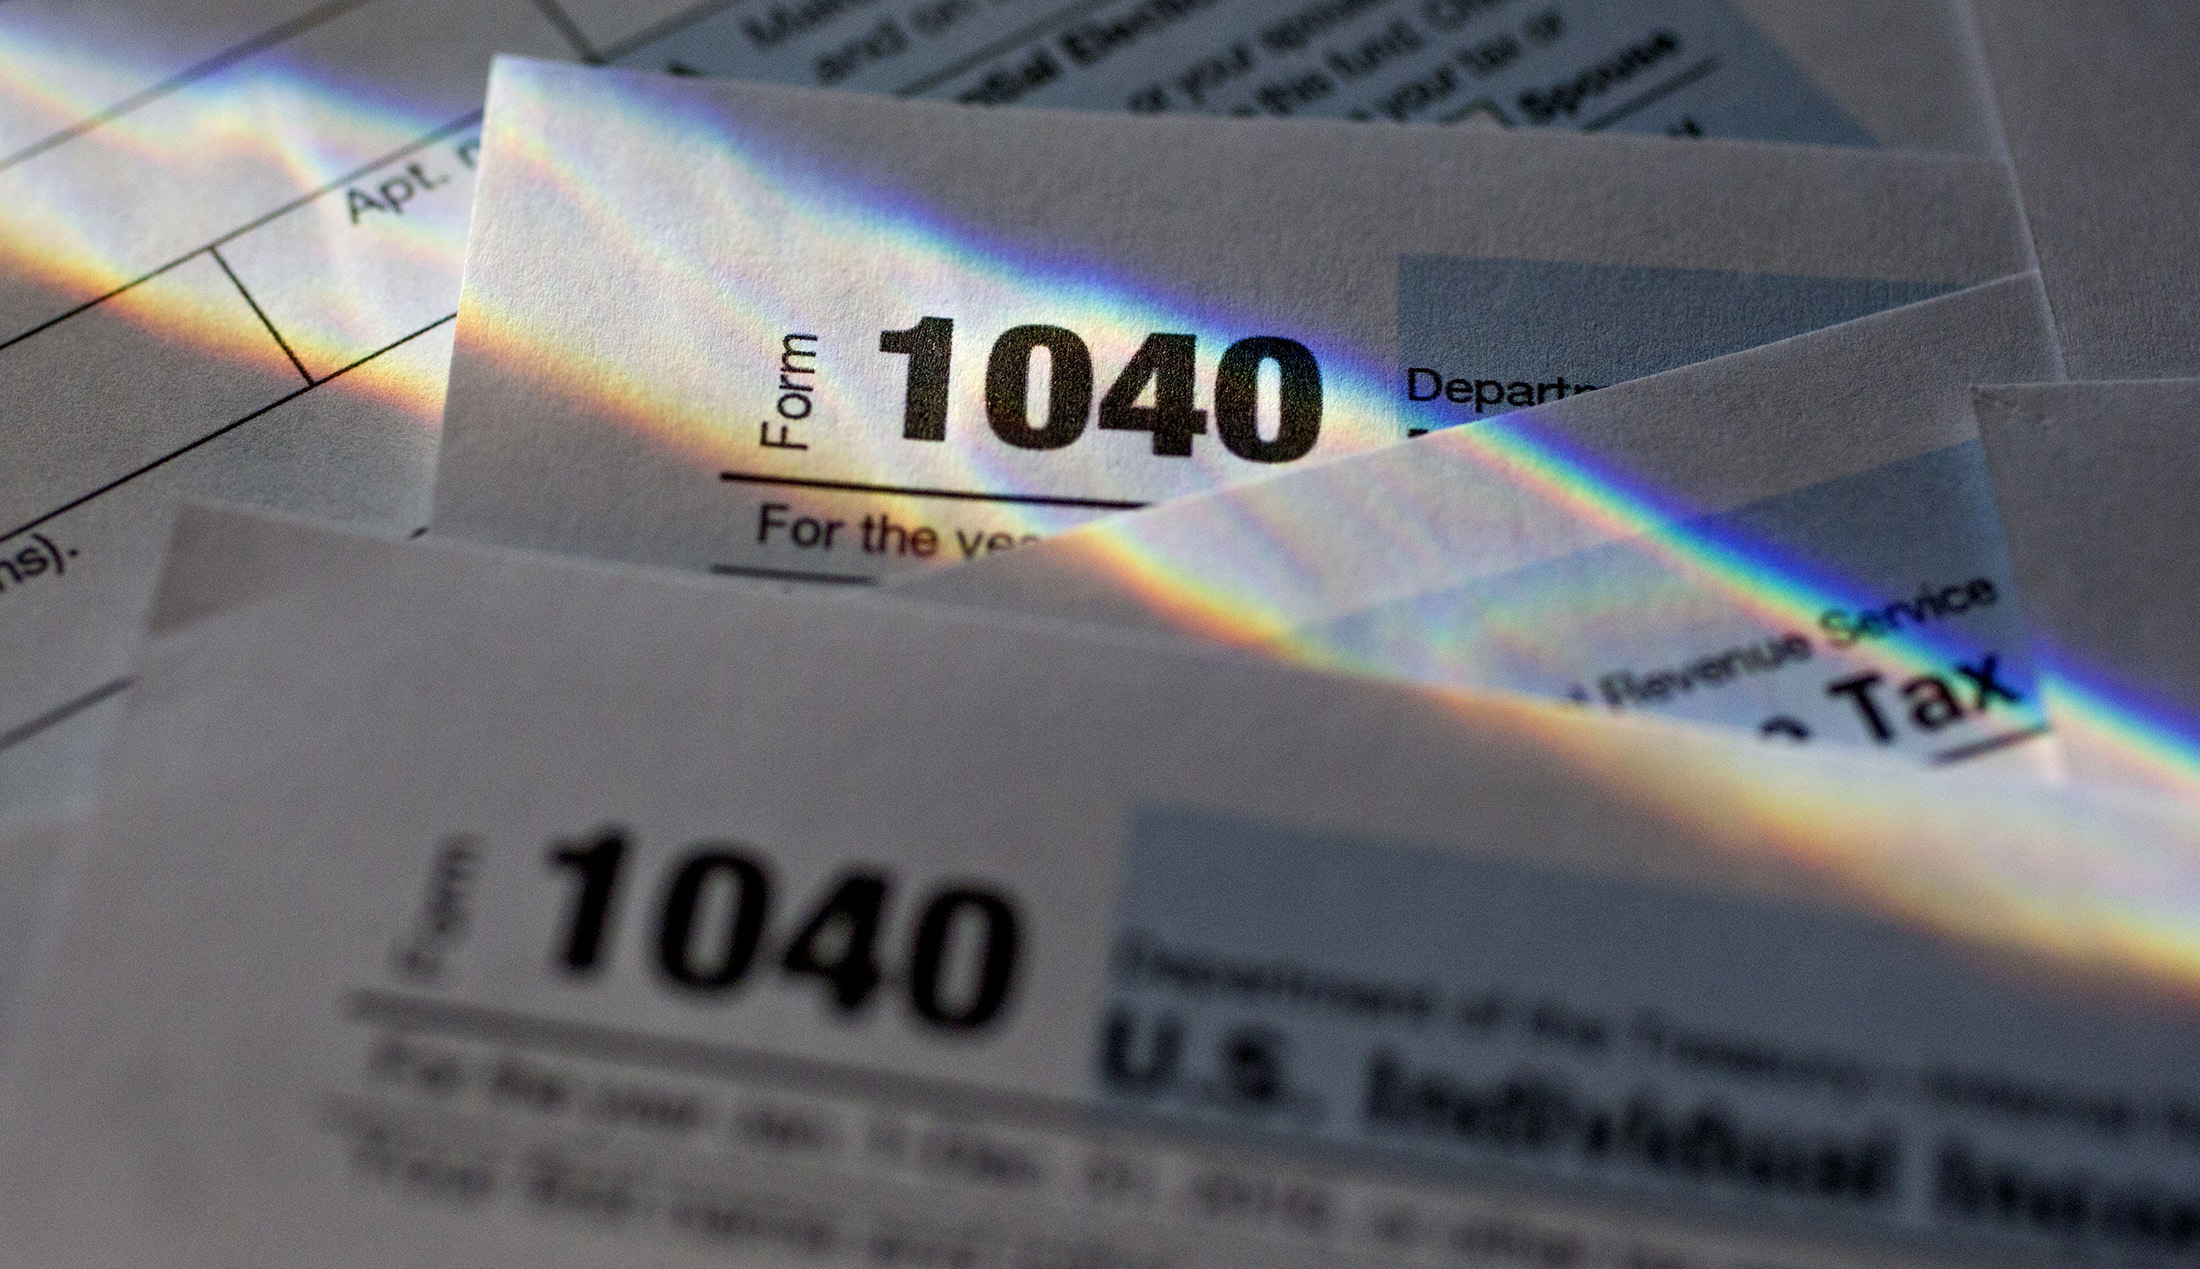 COVID-19 State Tax Relief for Illinois: Quarterly Payments Due